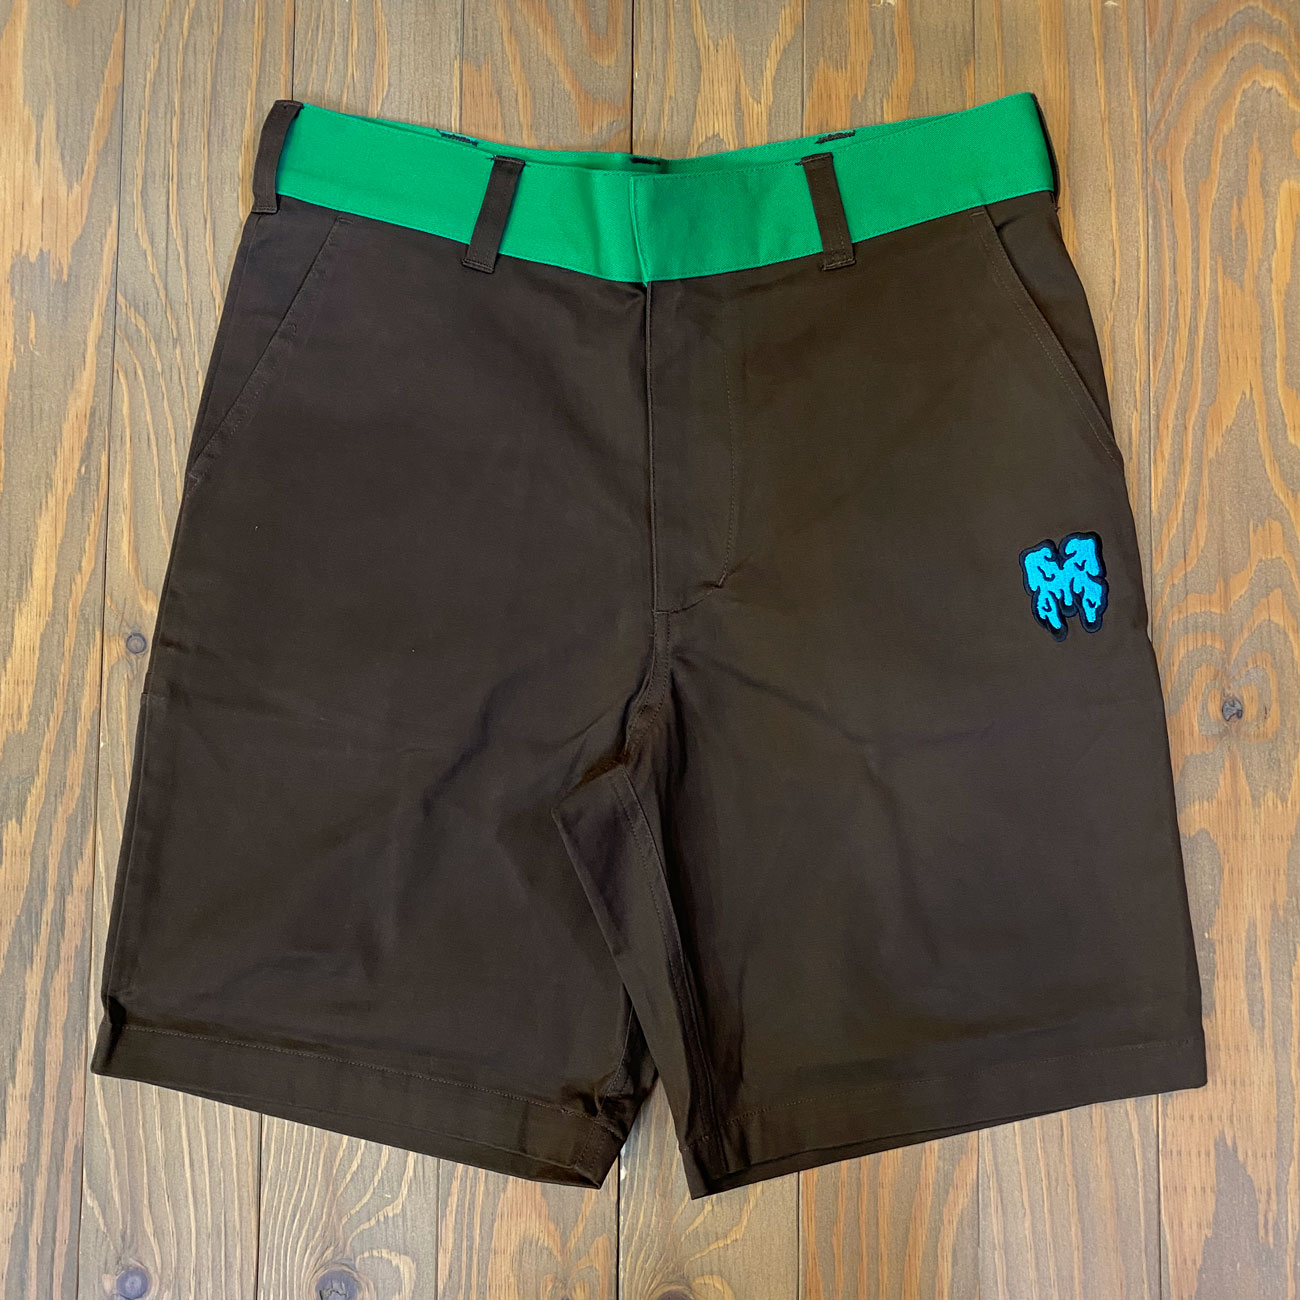 MxMxM WORK SHORTS 00 BROWN